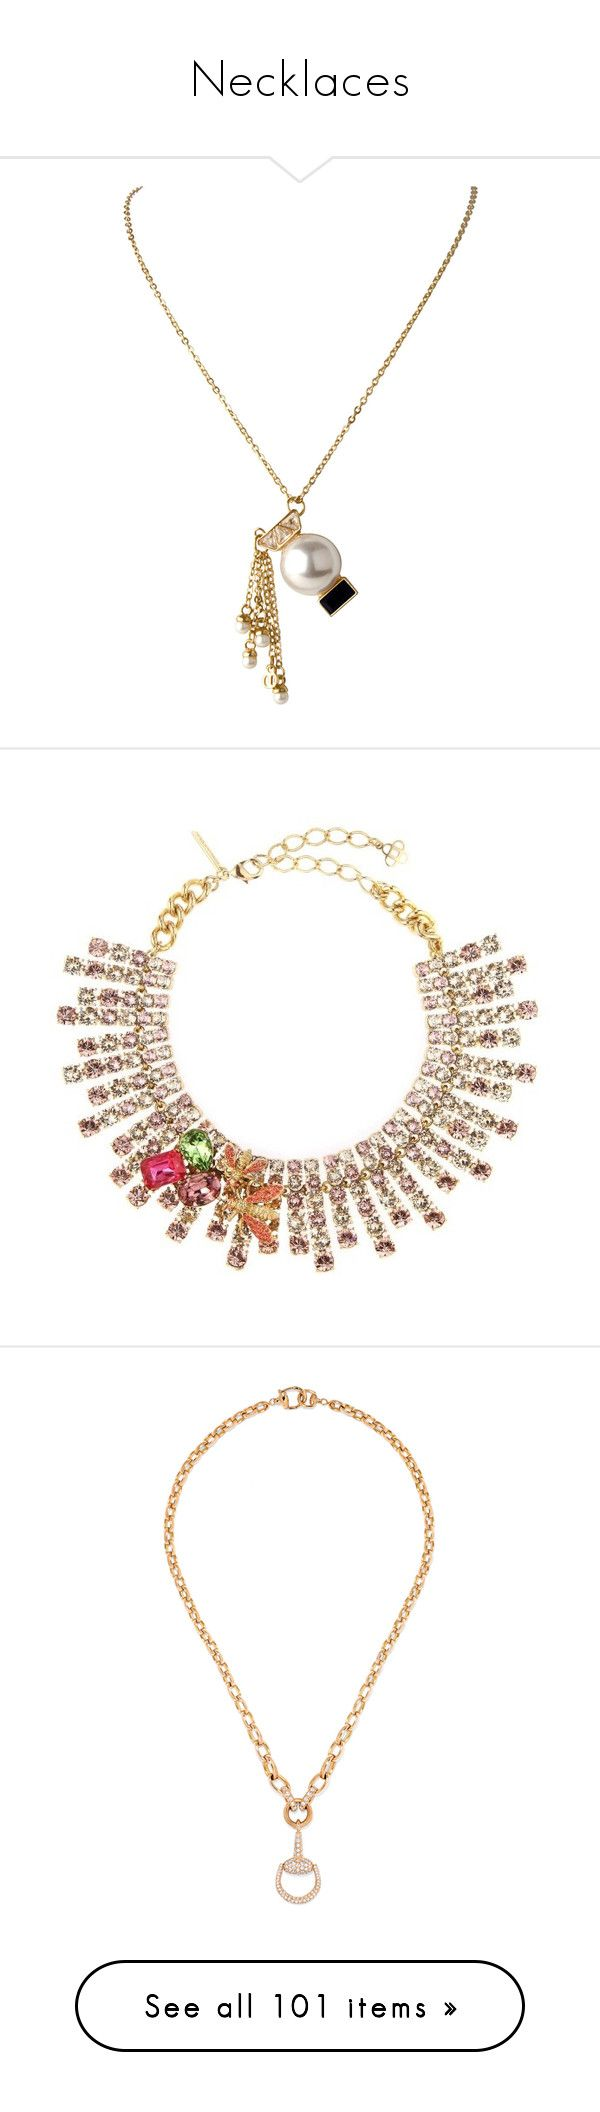 """""""Necklaces"""" by oh-aurora ❤ liked on Polyvore featuring jewelry, necklaces, charm necklaces, charm jewelry, chanel, accessories, apparel & accessories, gold, chanel necklace and chanel pendant"""